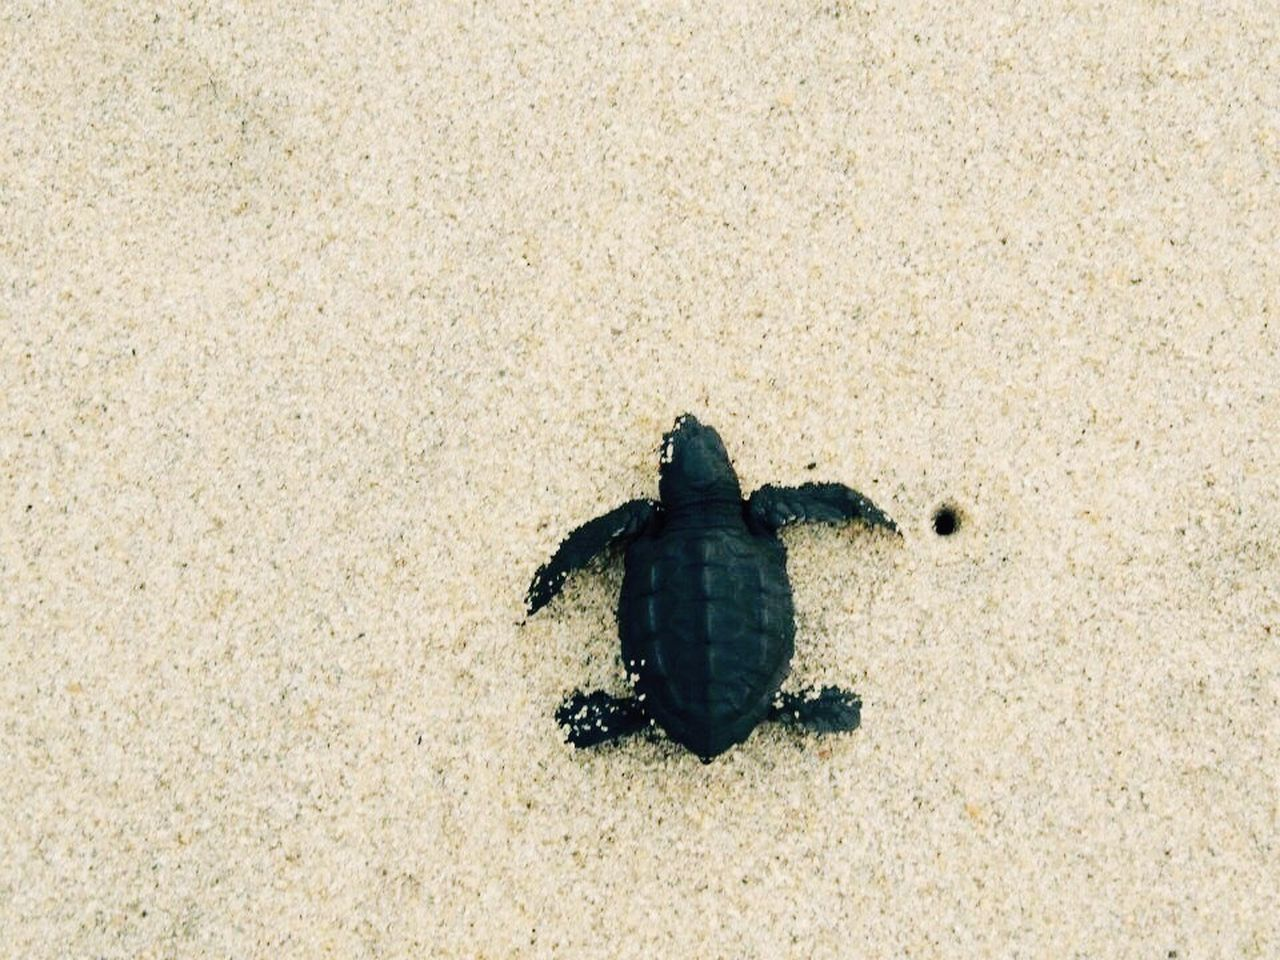 Animal Themes Animals In The Wild Sand One Animal High Angle View Beach Outdoors Animal Wildlife No People Nature Day Sea Life Close-up Sea Turtle Beauty In Nature Turtle Beachphotography